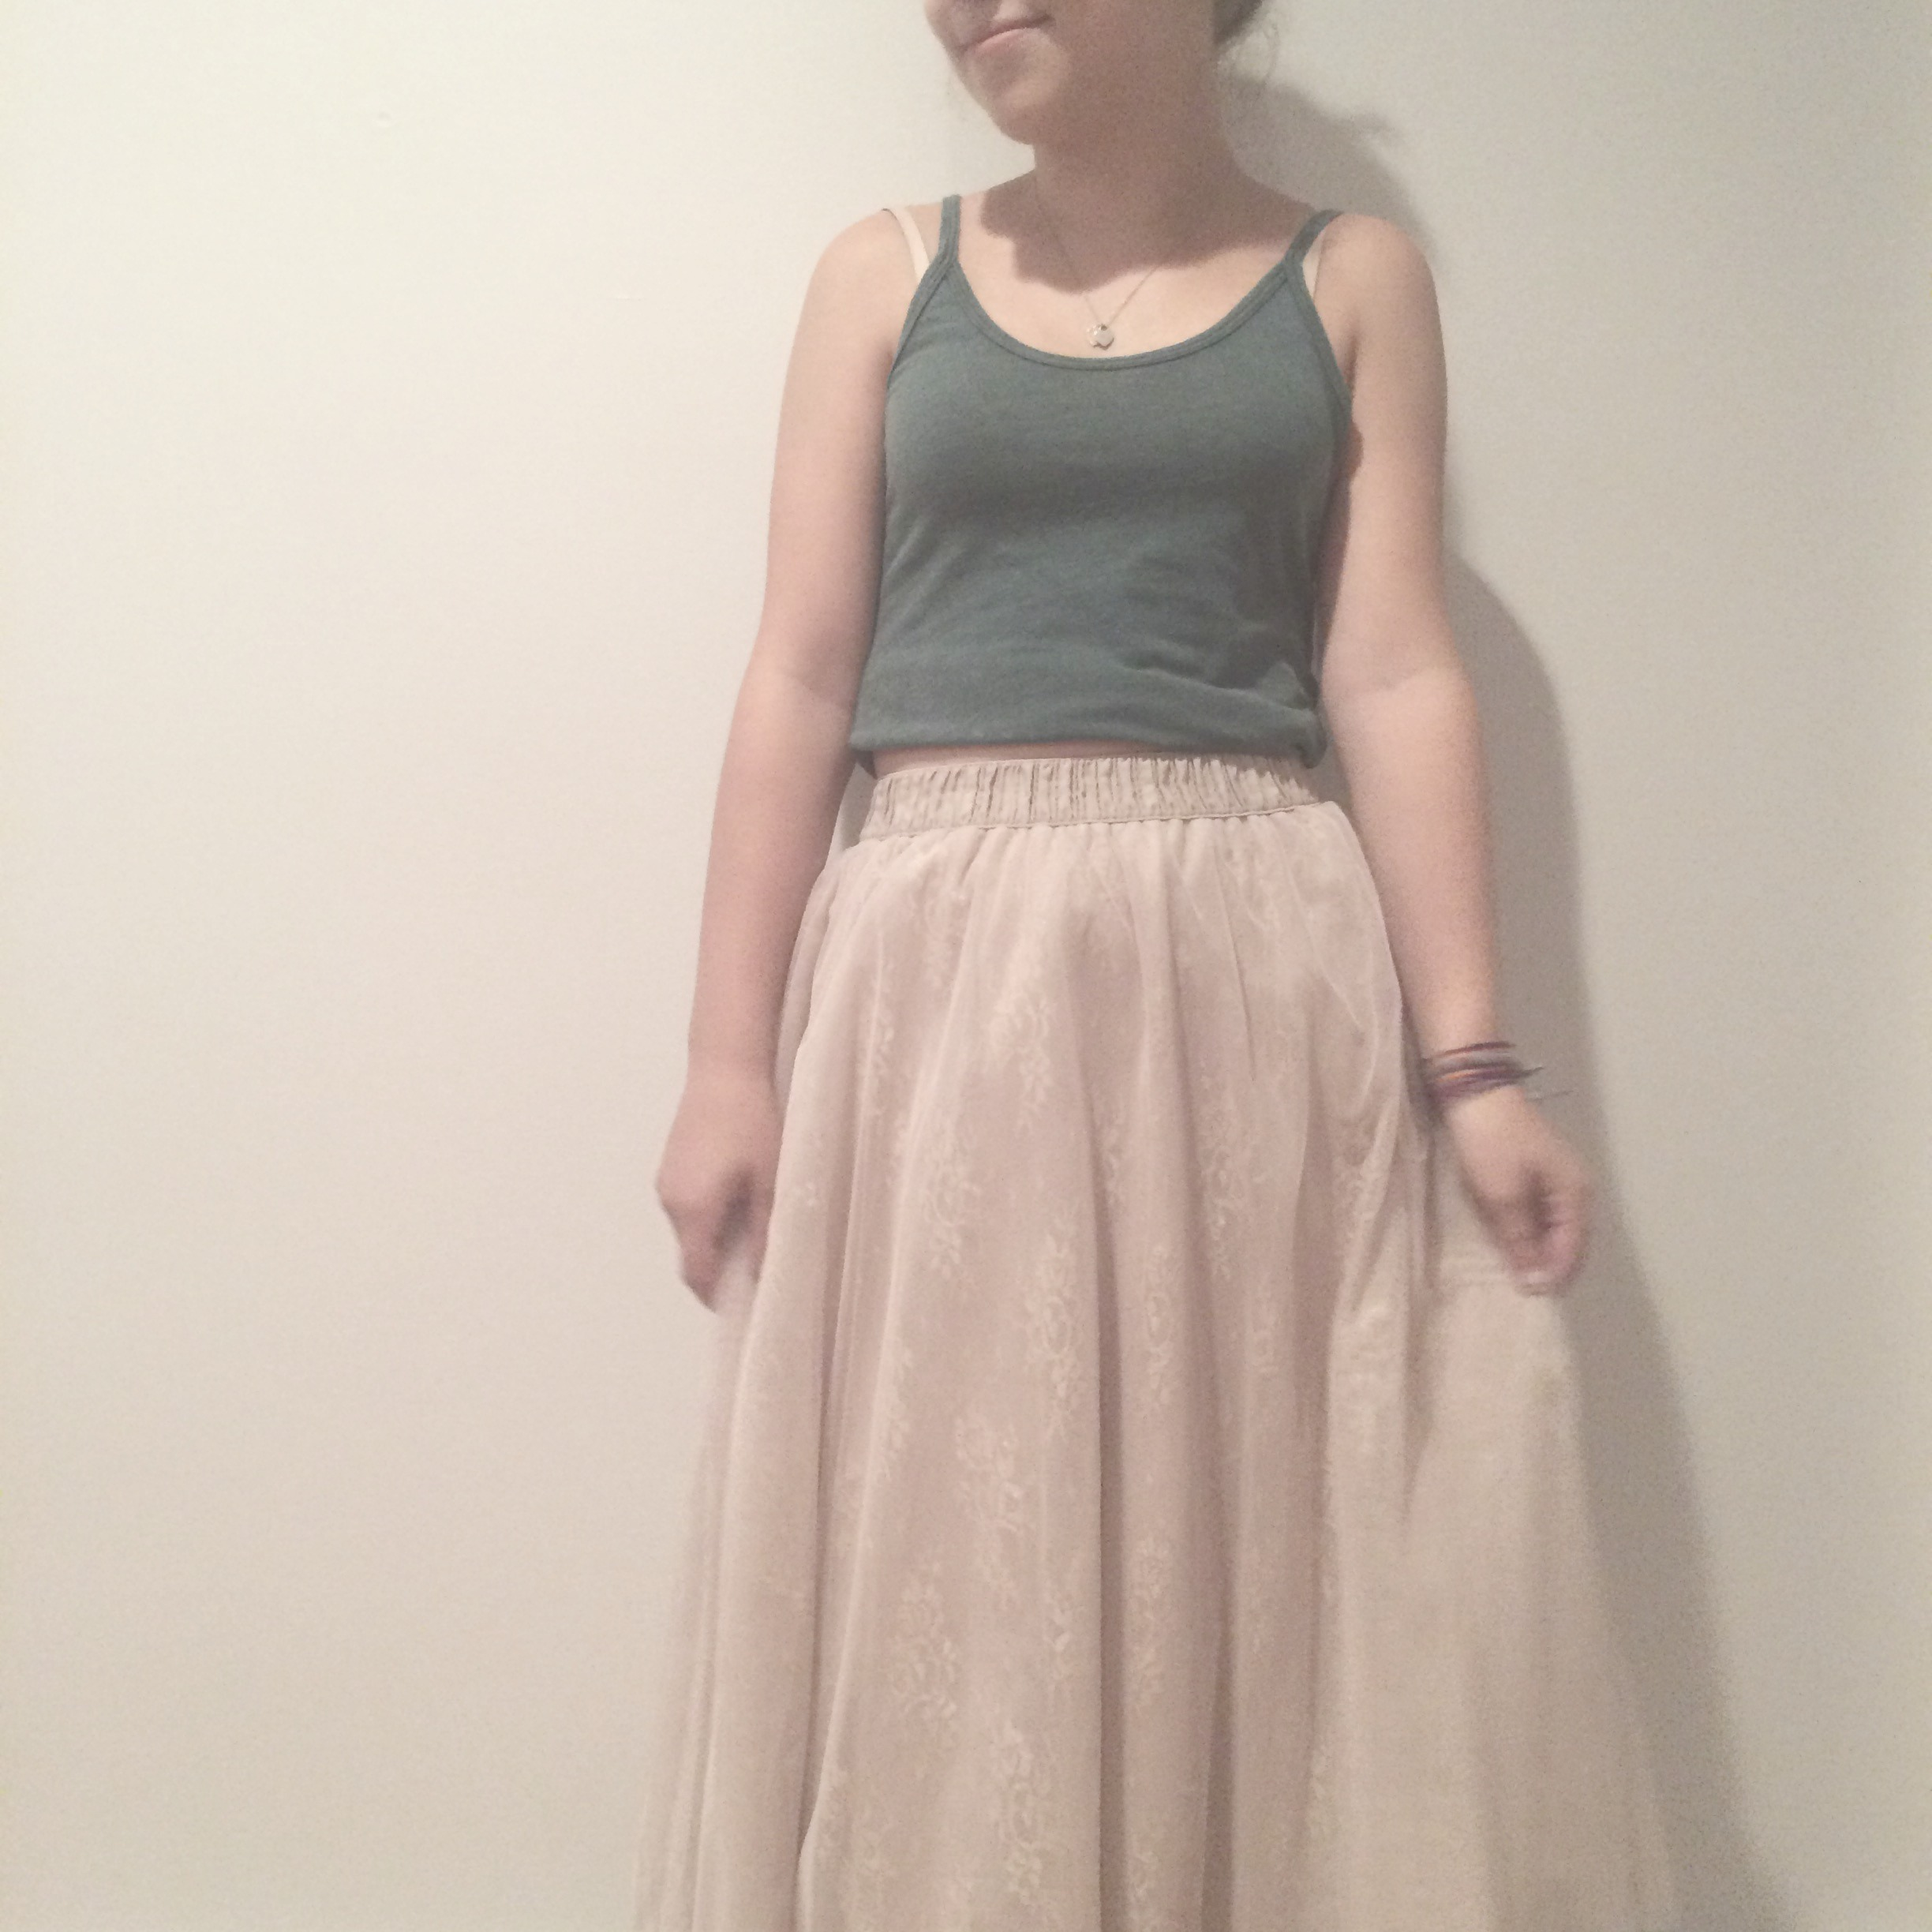 3 ways to style a tulle skirt